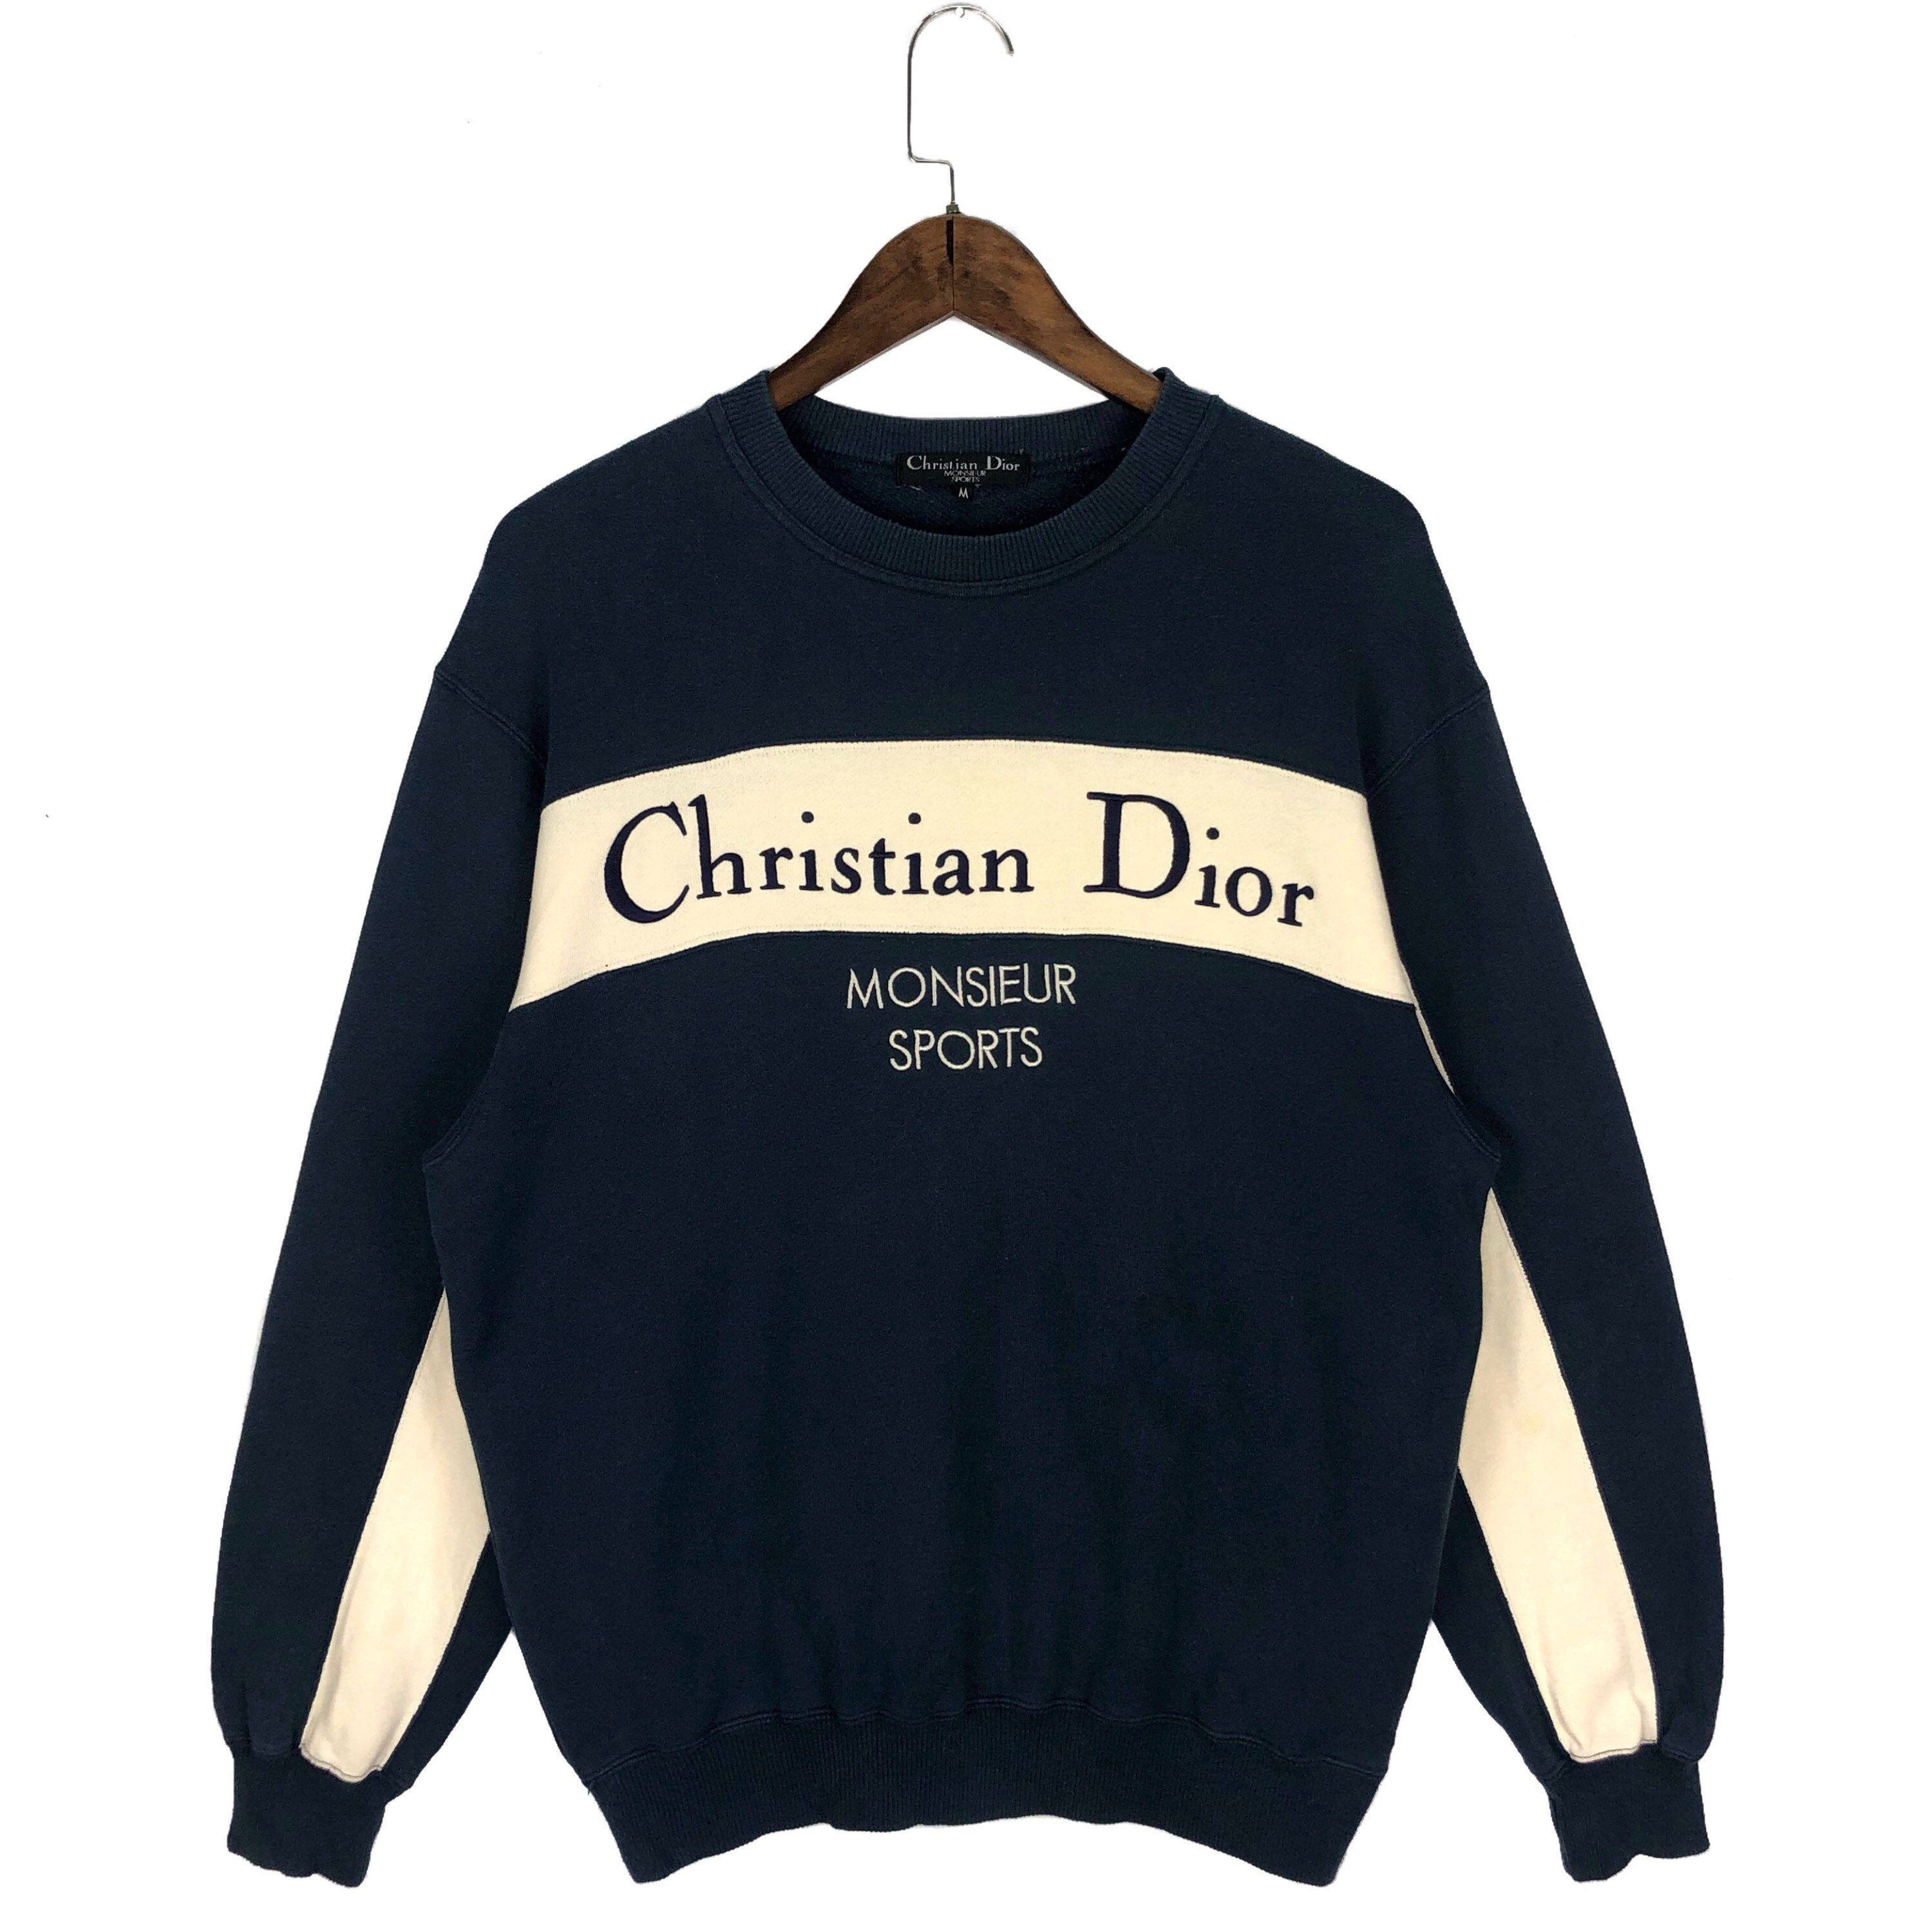 Excited To Share This Item From My Etsy Shop Vintage 90s Christian Dior Mousieur Crewneck Sweatshirt Vintage Crewneck Sweatshirt Sweatshirts Vintage Hoodies [ 3000 x 3000 Pixel ]